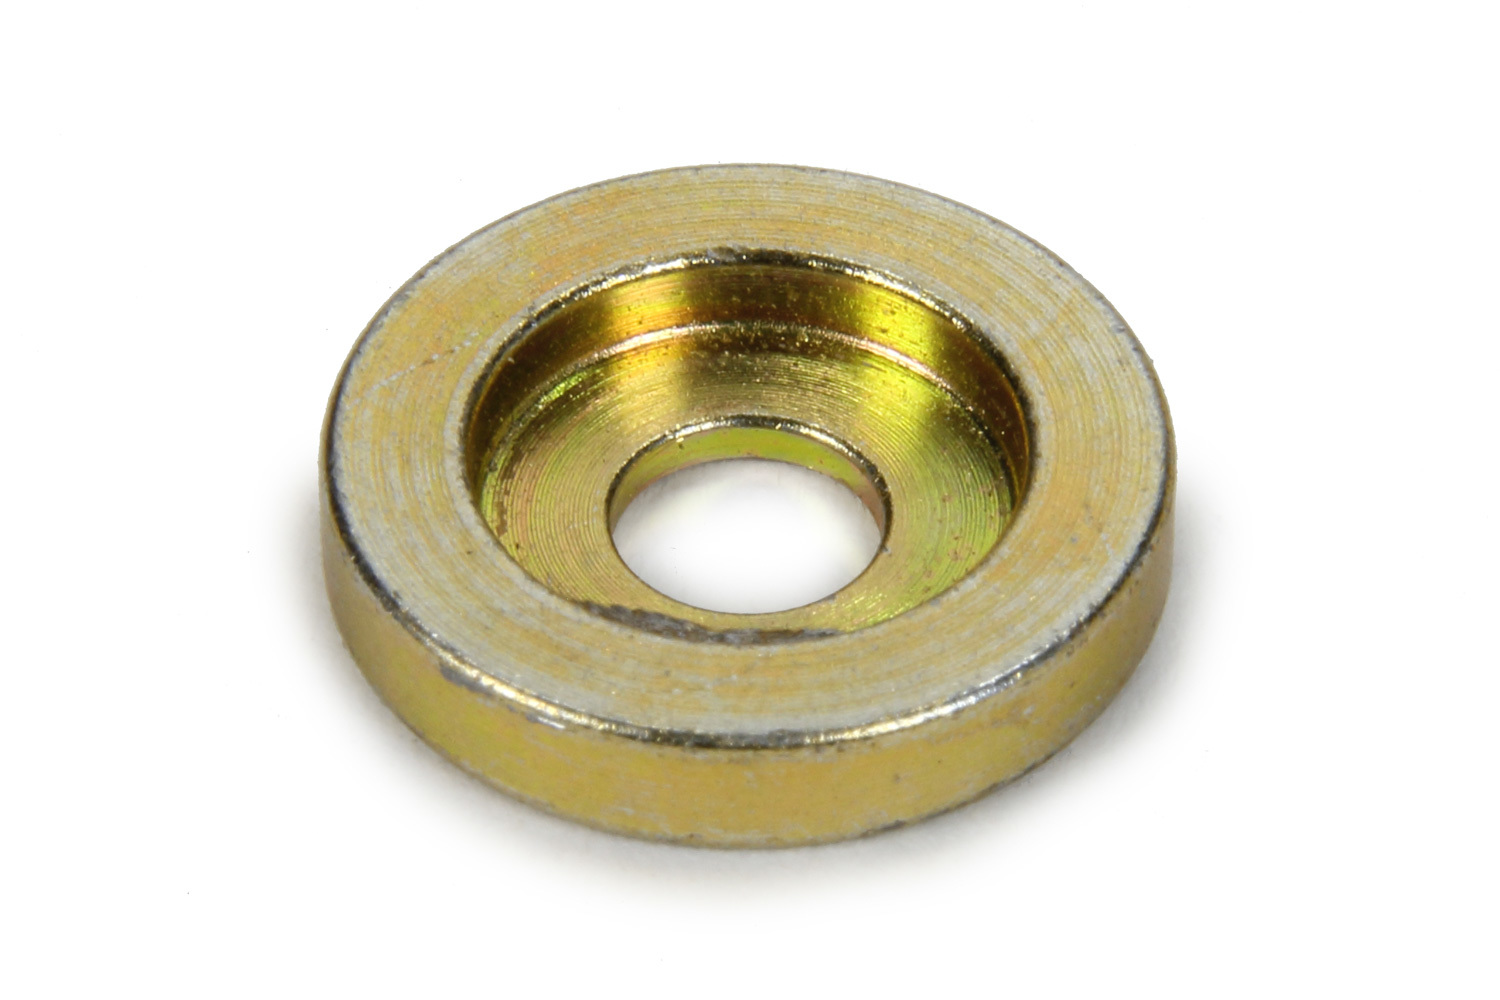 Counter Shaft Locking Washer